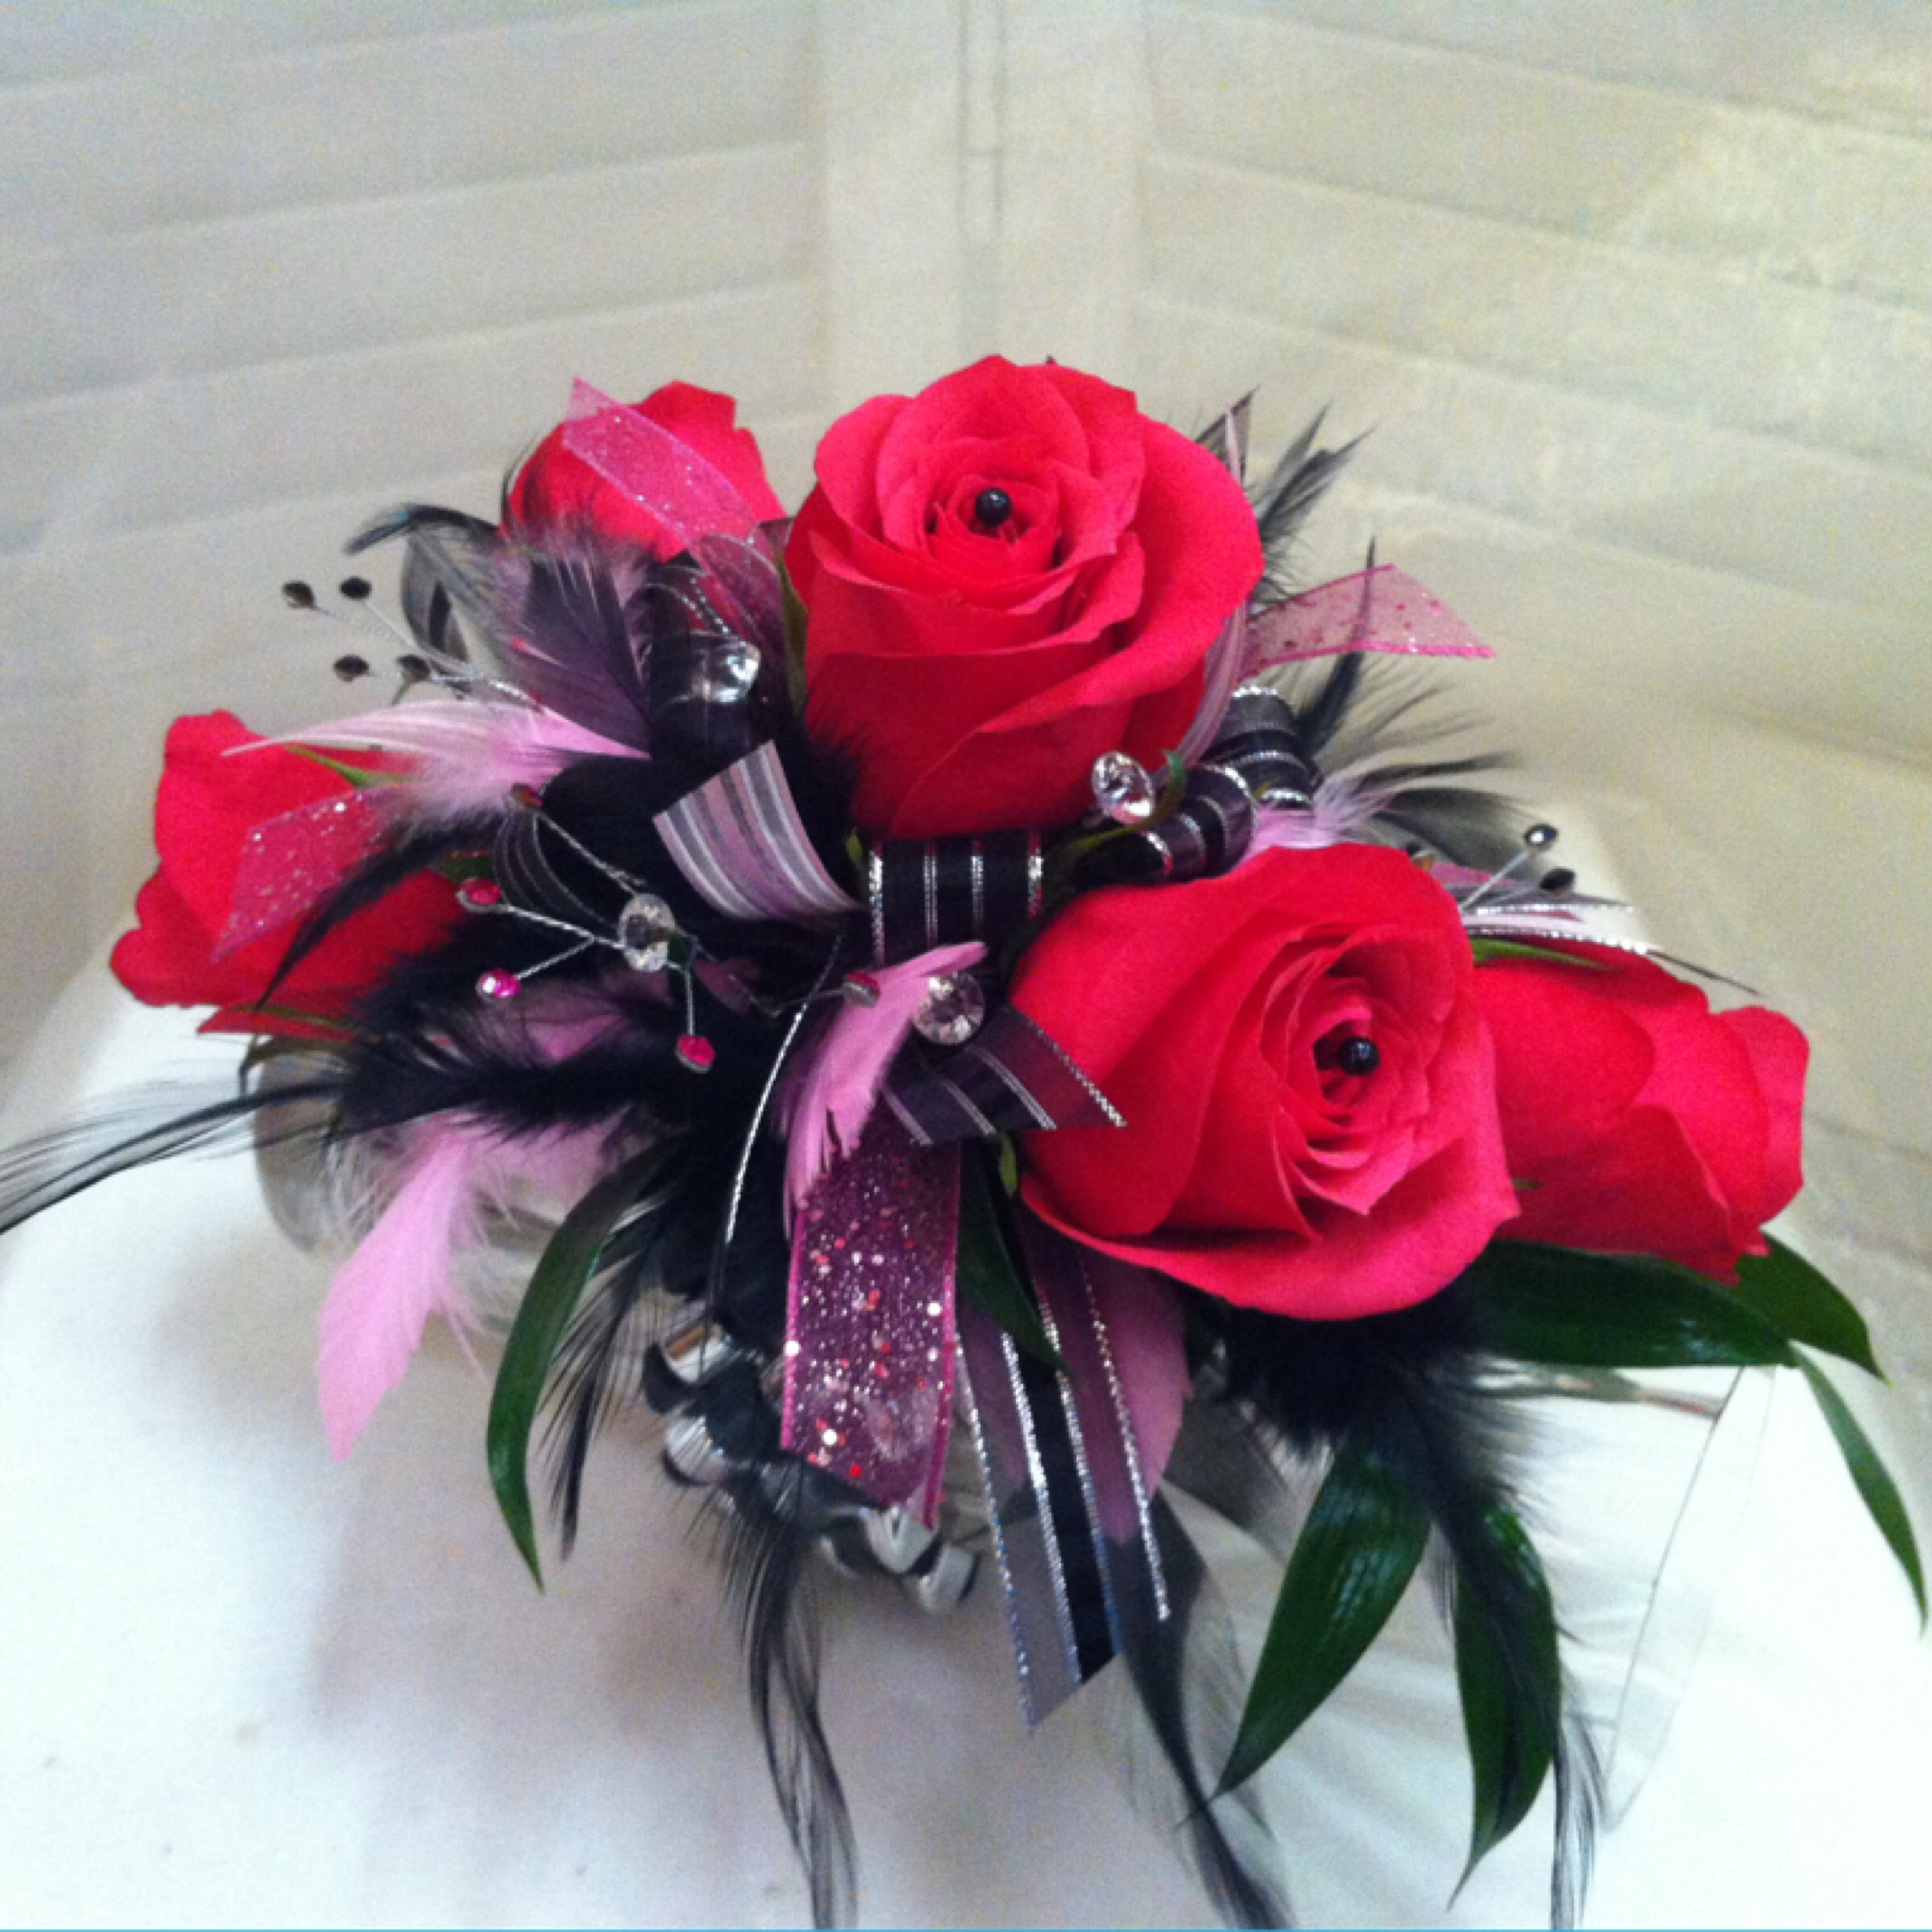 Premium Corsage (35) with Extra Jewels (5) on Super Bracelet (8) $48